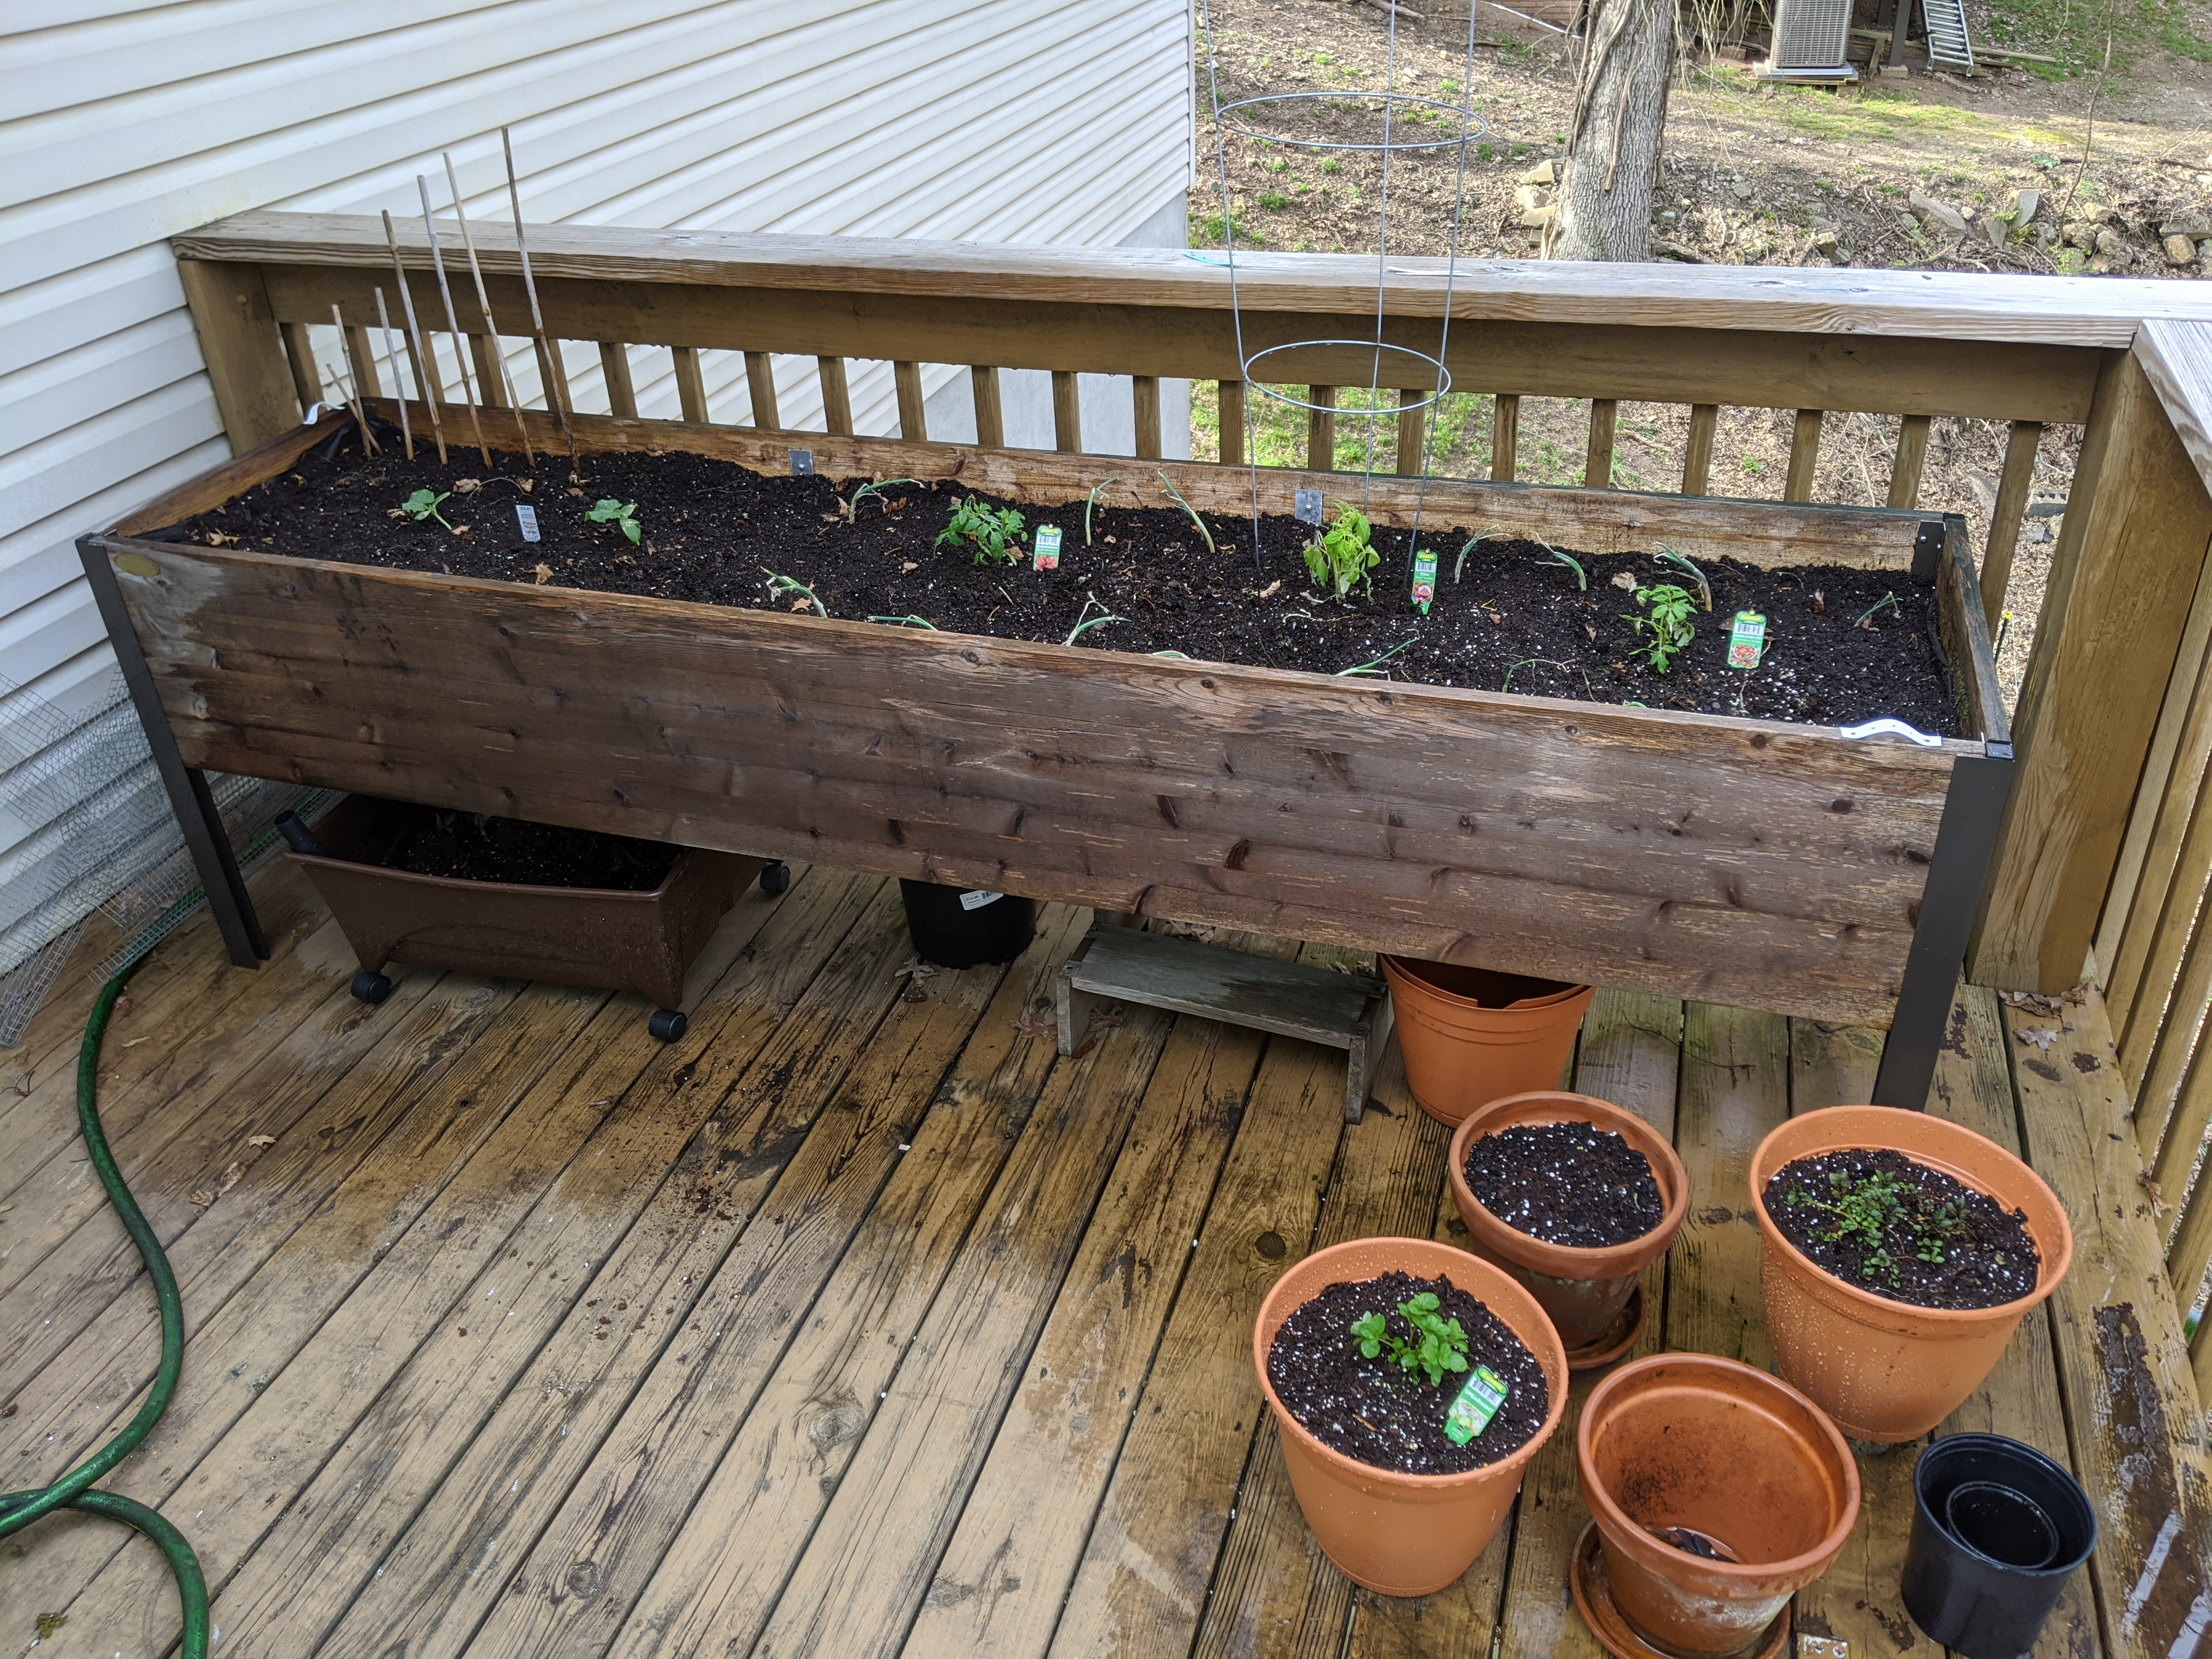 Container garden on a deck